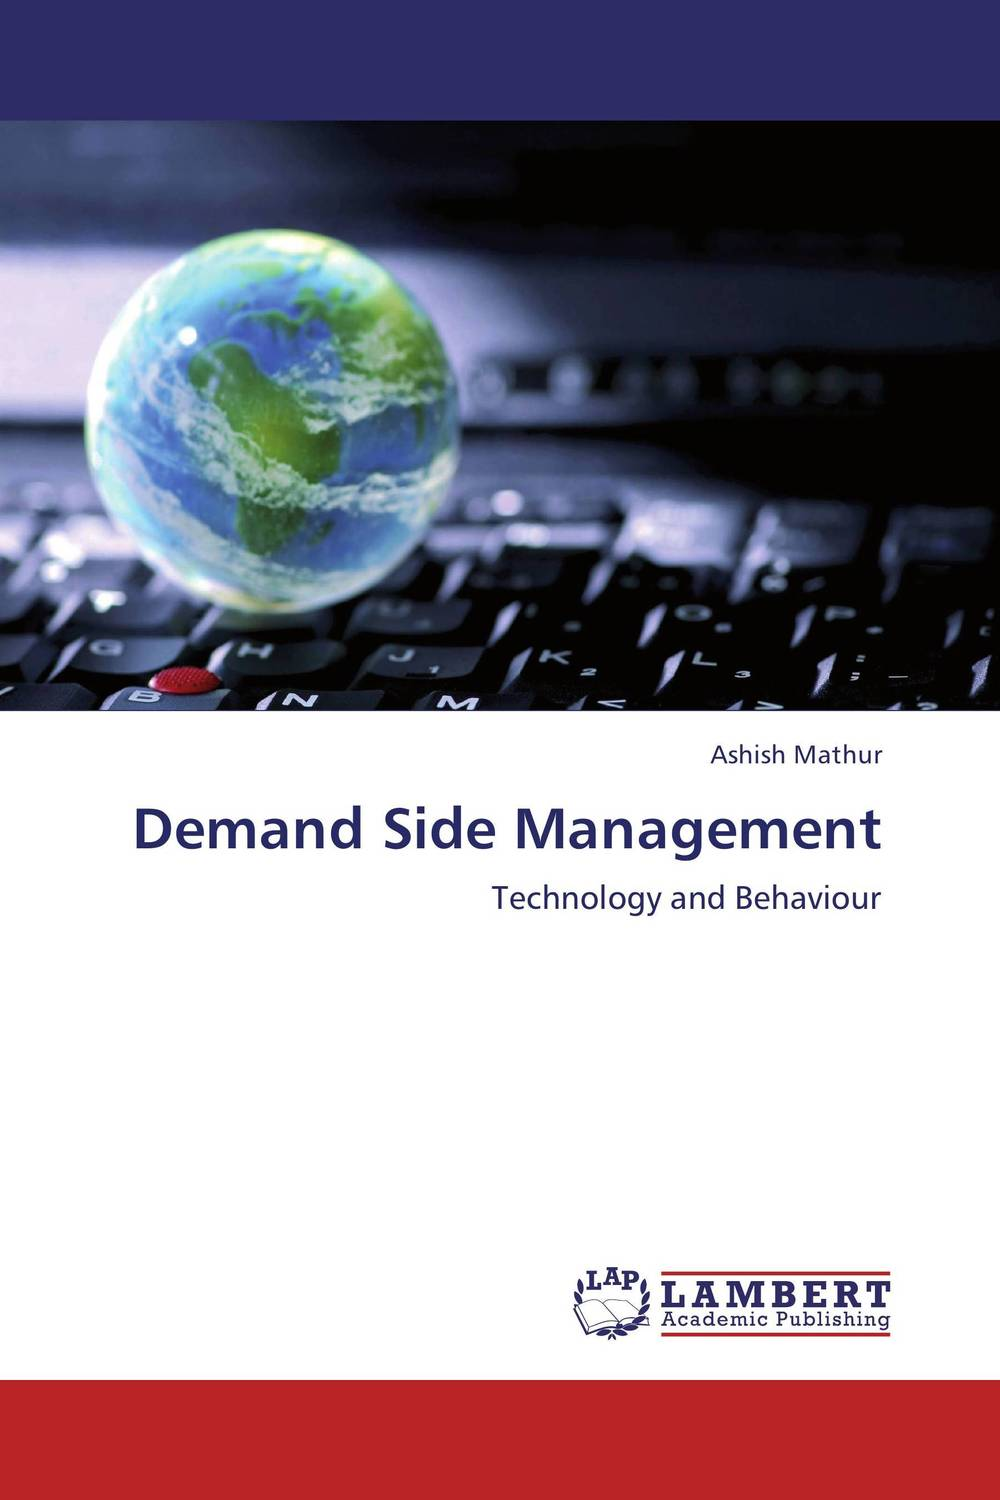 Demand Side Management charles chase w next generation demand management people process analytics and technology